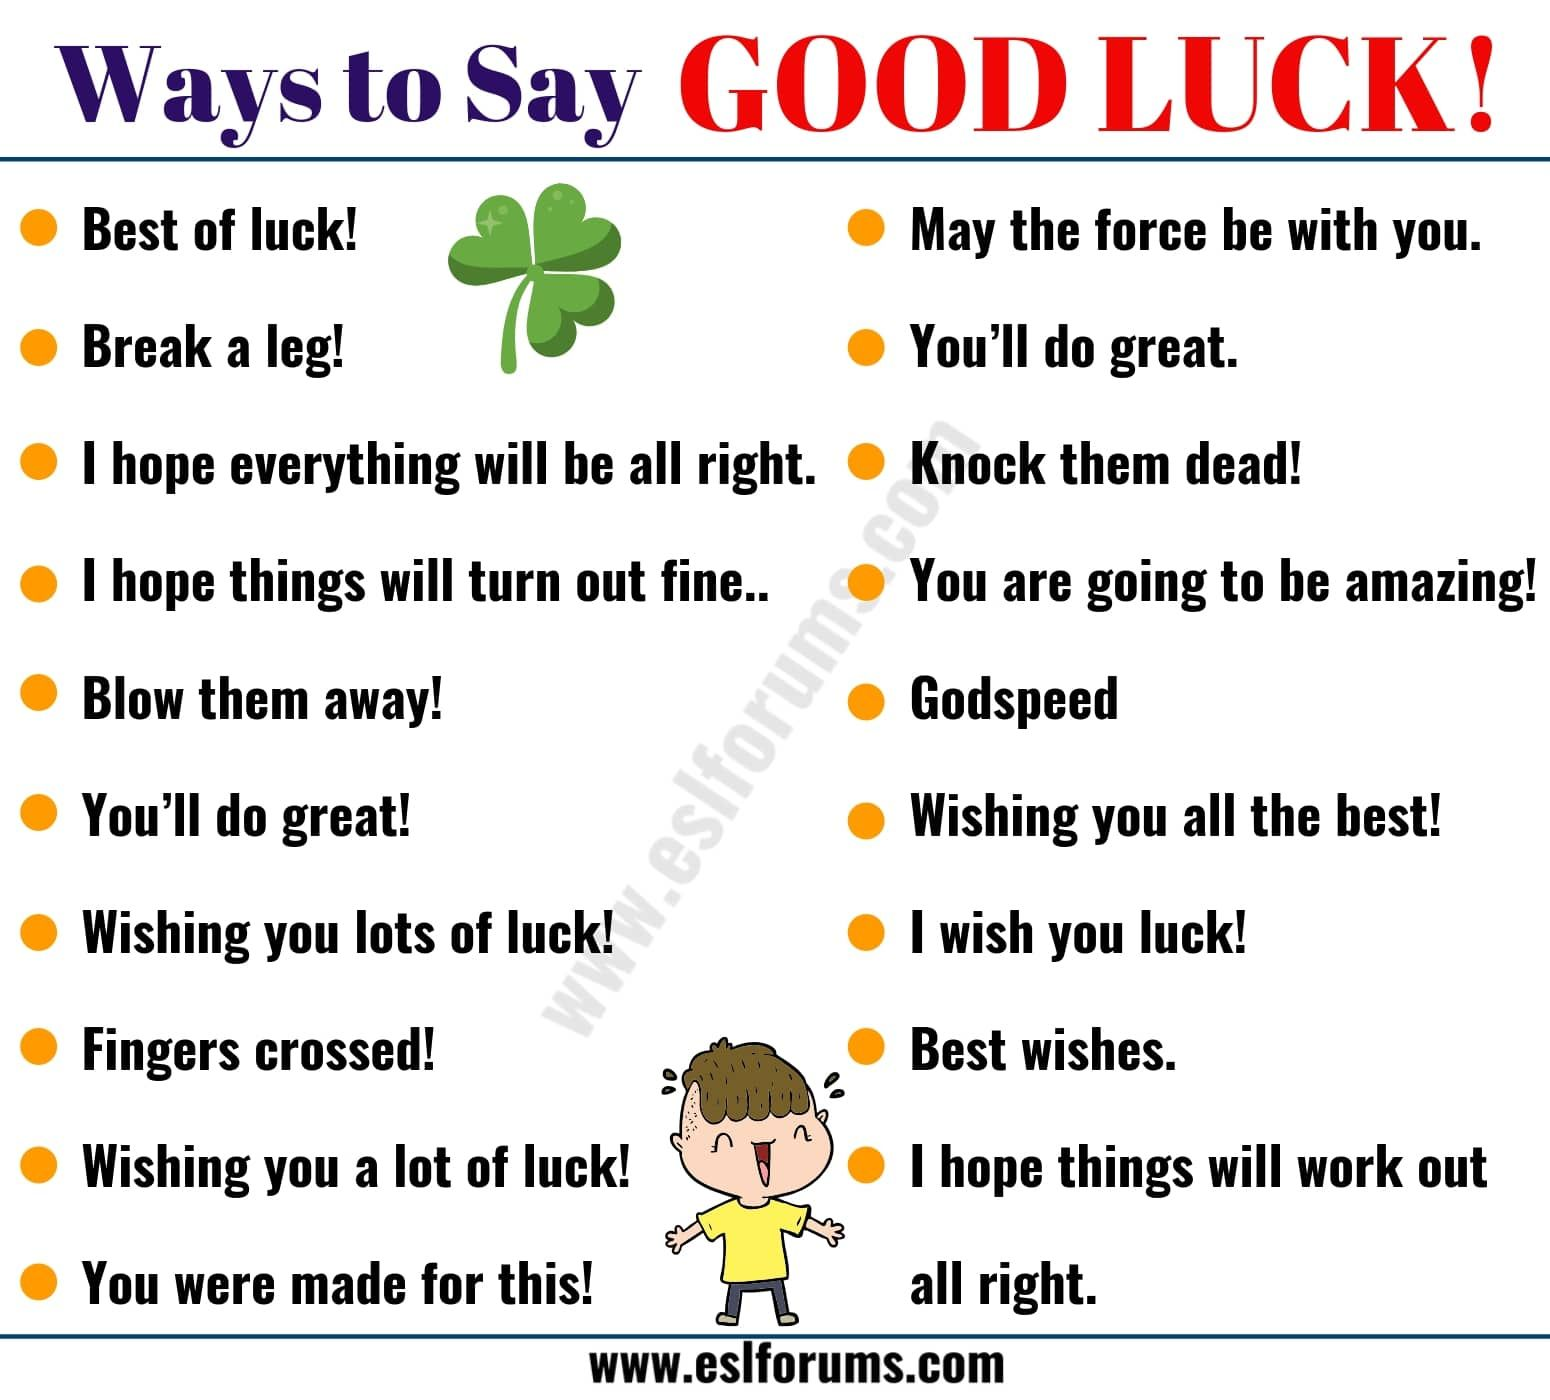 Good Luck Synonym 29 Power Ways To Say Good Luck